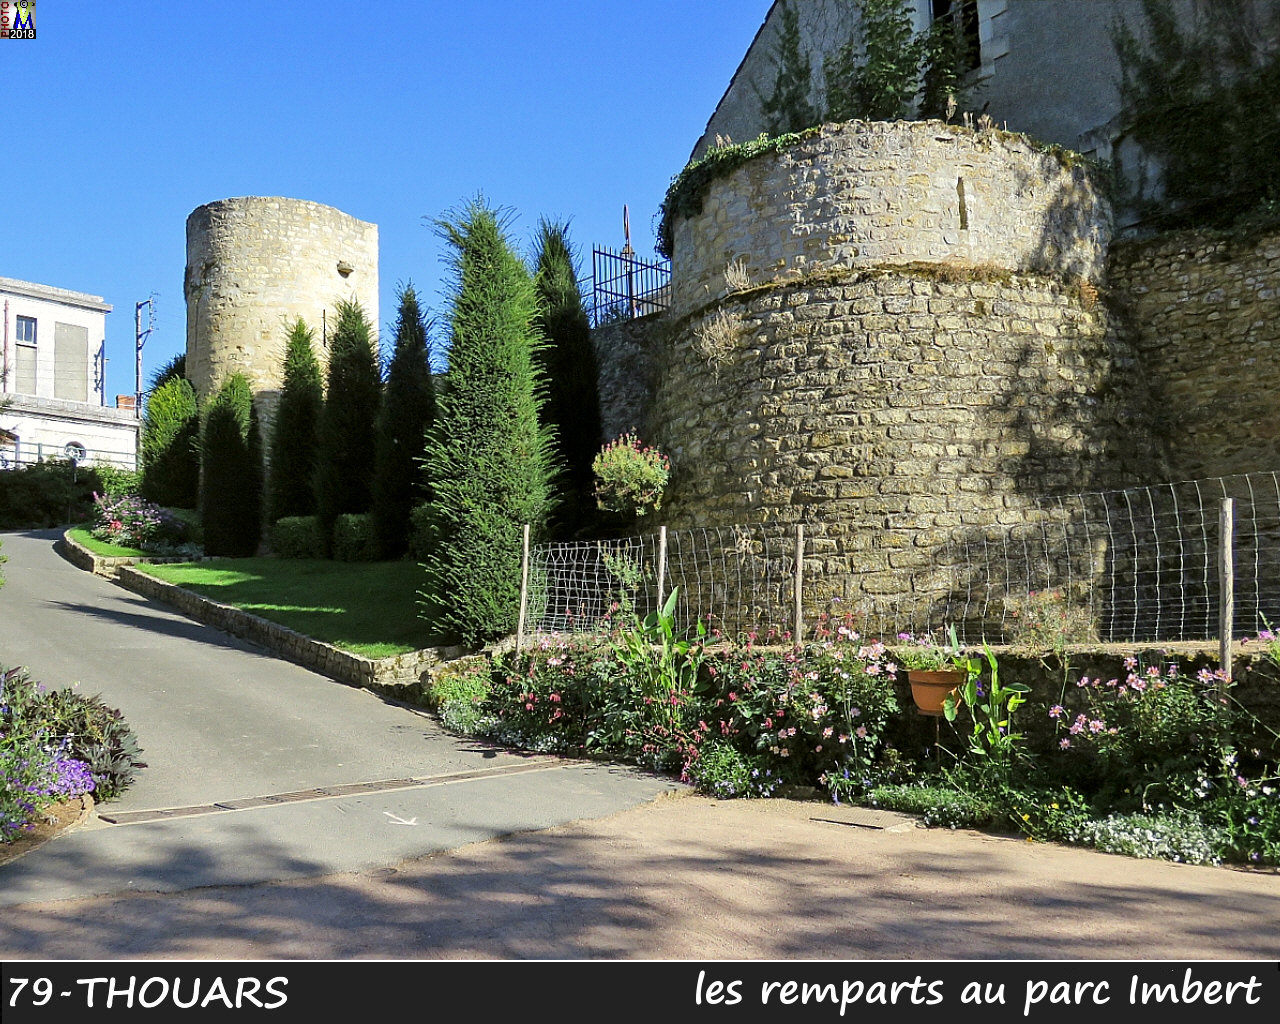 79THOUARS_remparts_1000.jpg